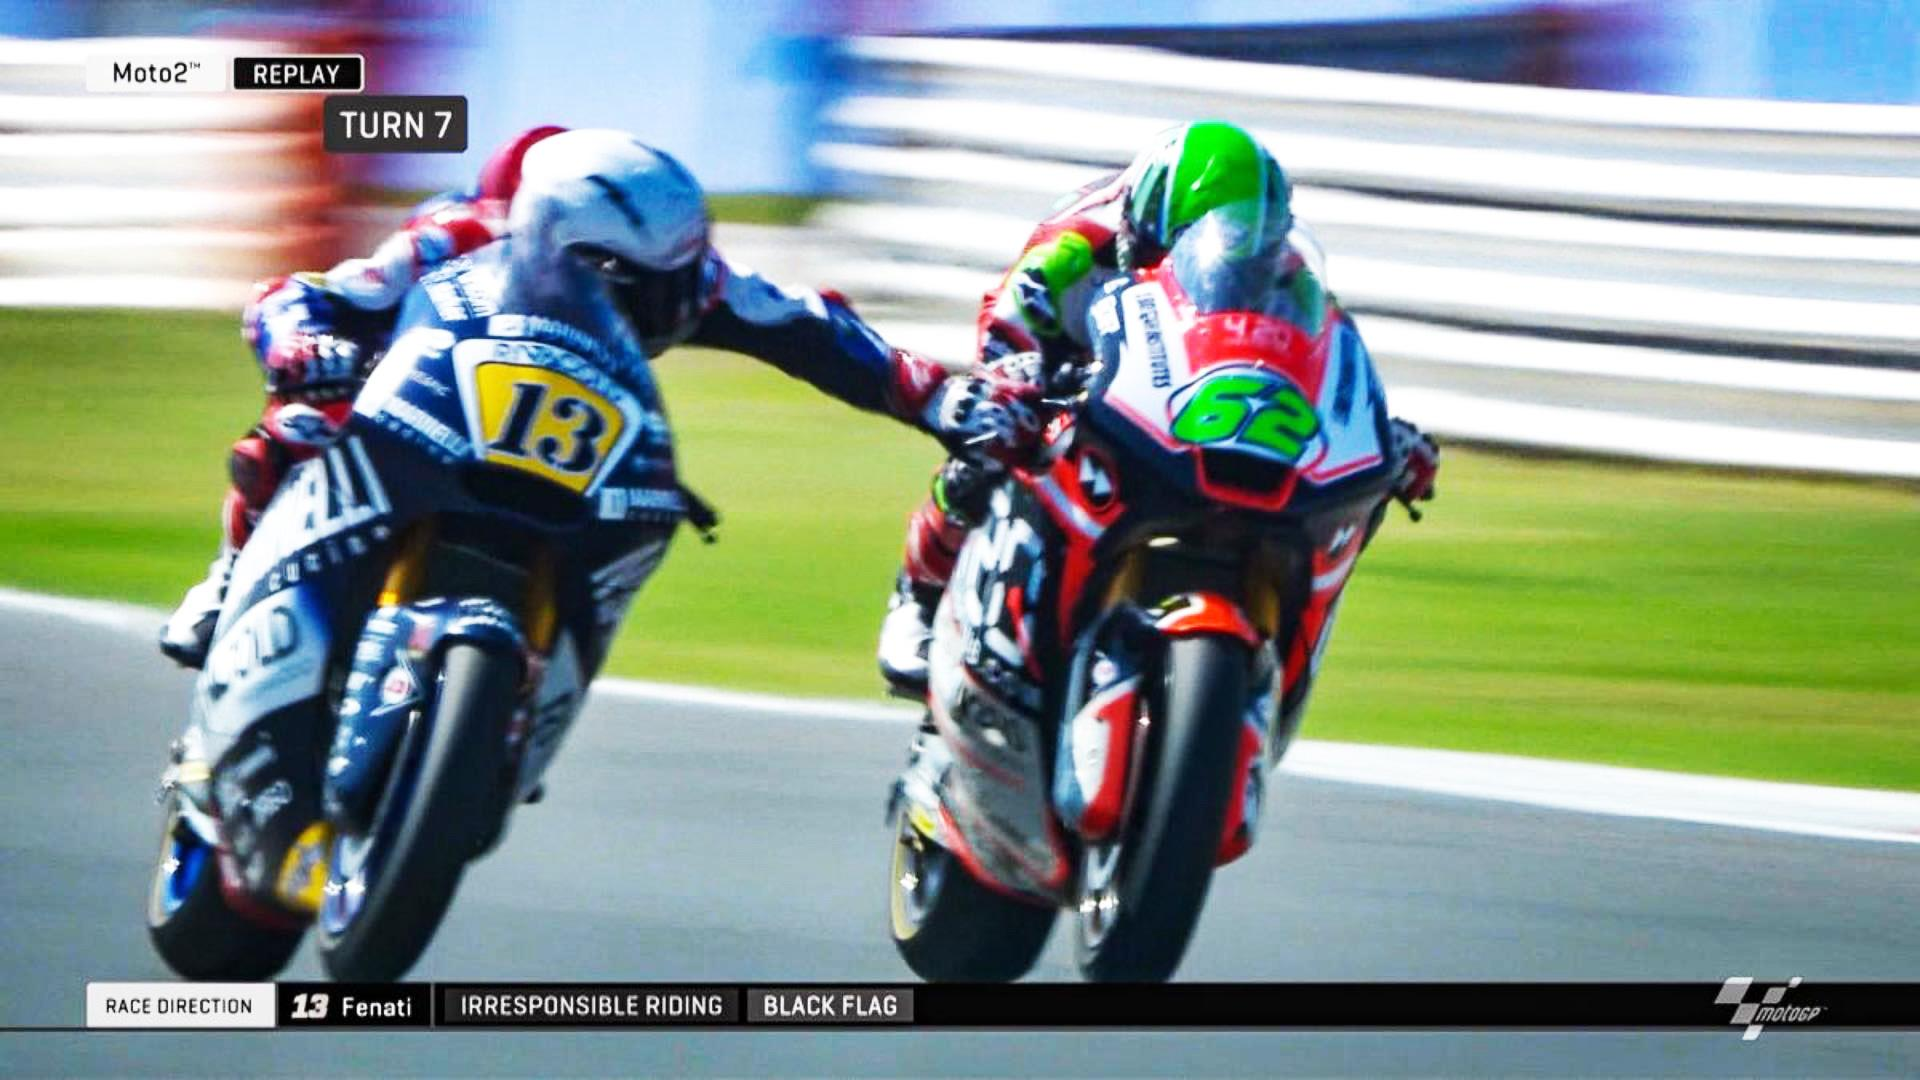 This was the shocking moment Romano Fenati put another racer's life in danger